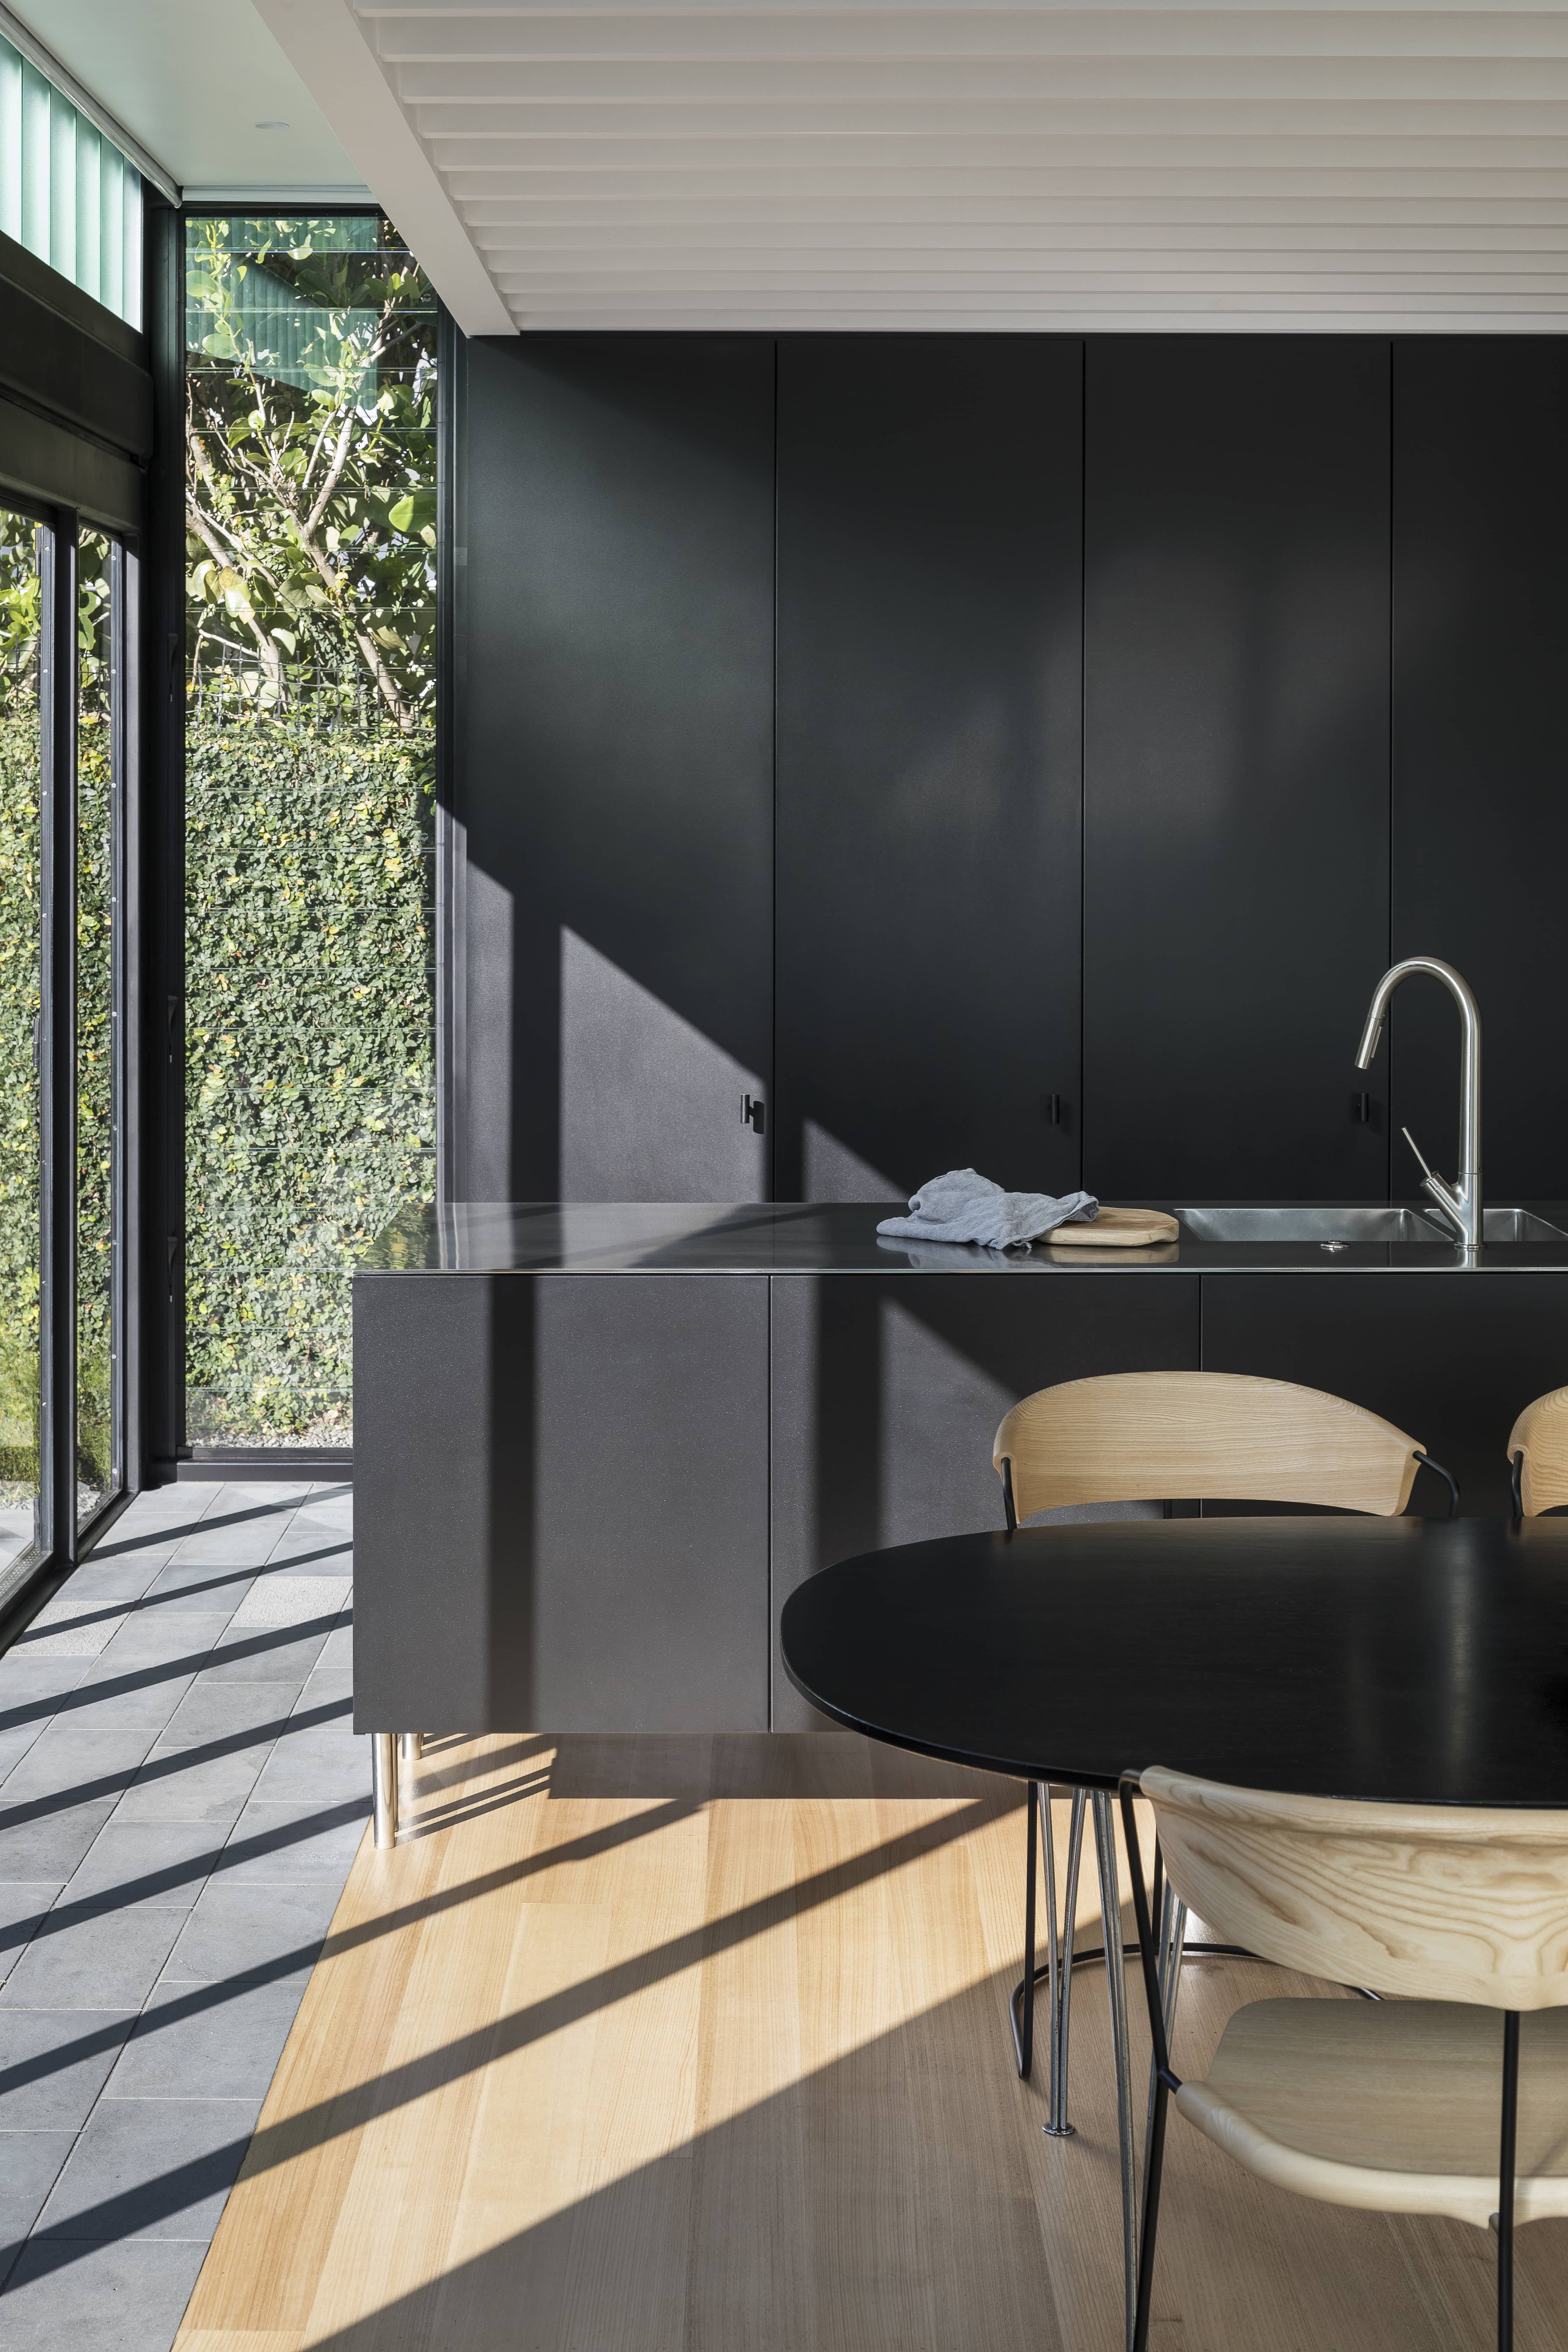 Gallery Of Column Refrigerators And Freezers By Fisher & Paykel Local Australian Architecture & Design Image 3